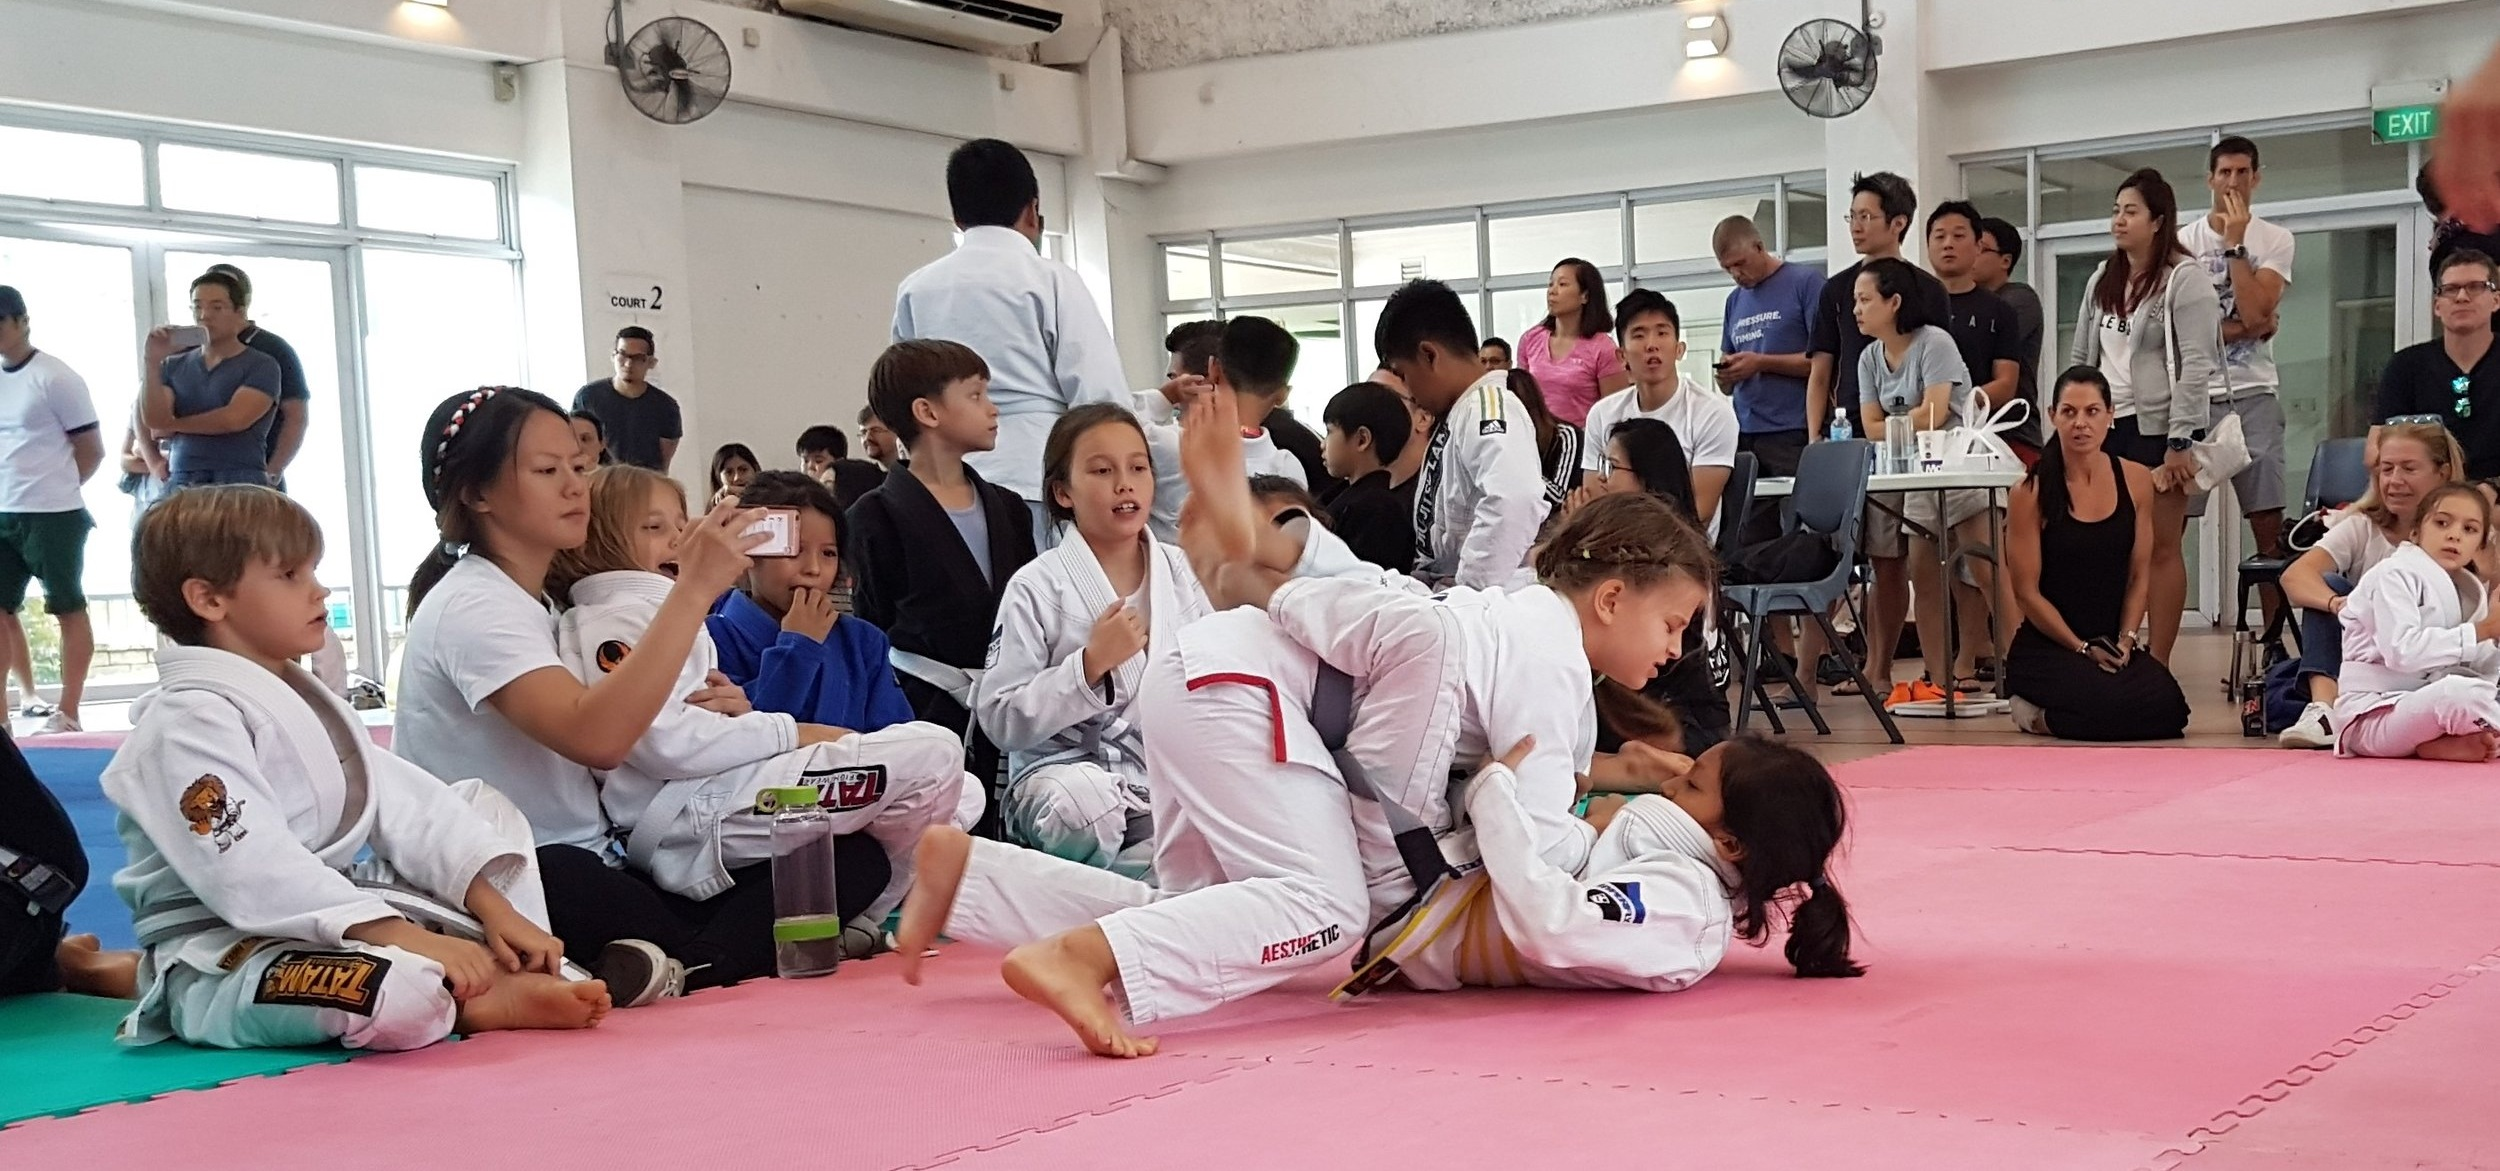 BJJ Competition in Singapore (2017)